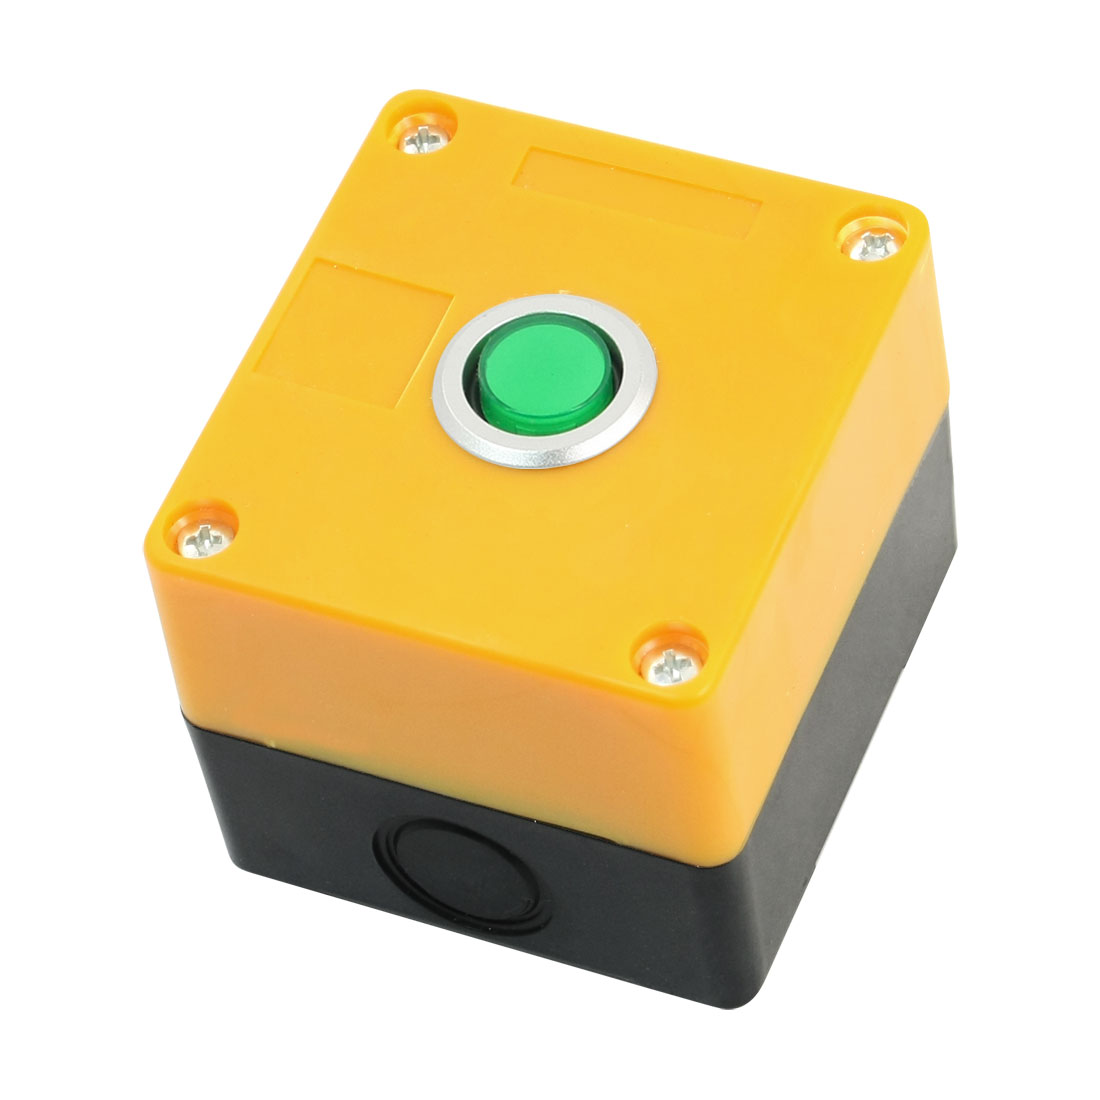 SPDT 5-Pin 1NO 1NC Momentary Green Pilot Lamp Rectangle Yellow Plastic Case Push Button Control Station Box AC220V 5A